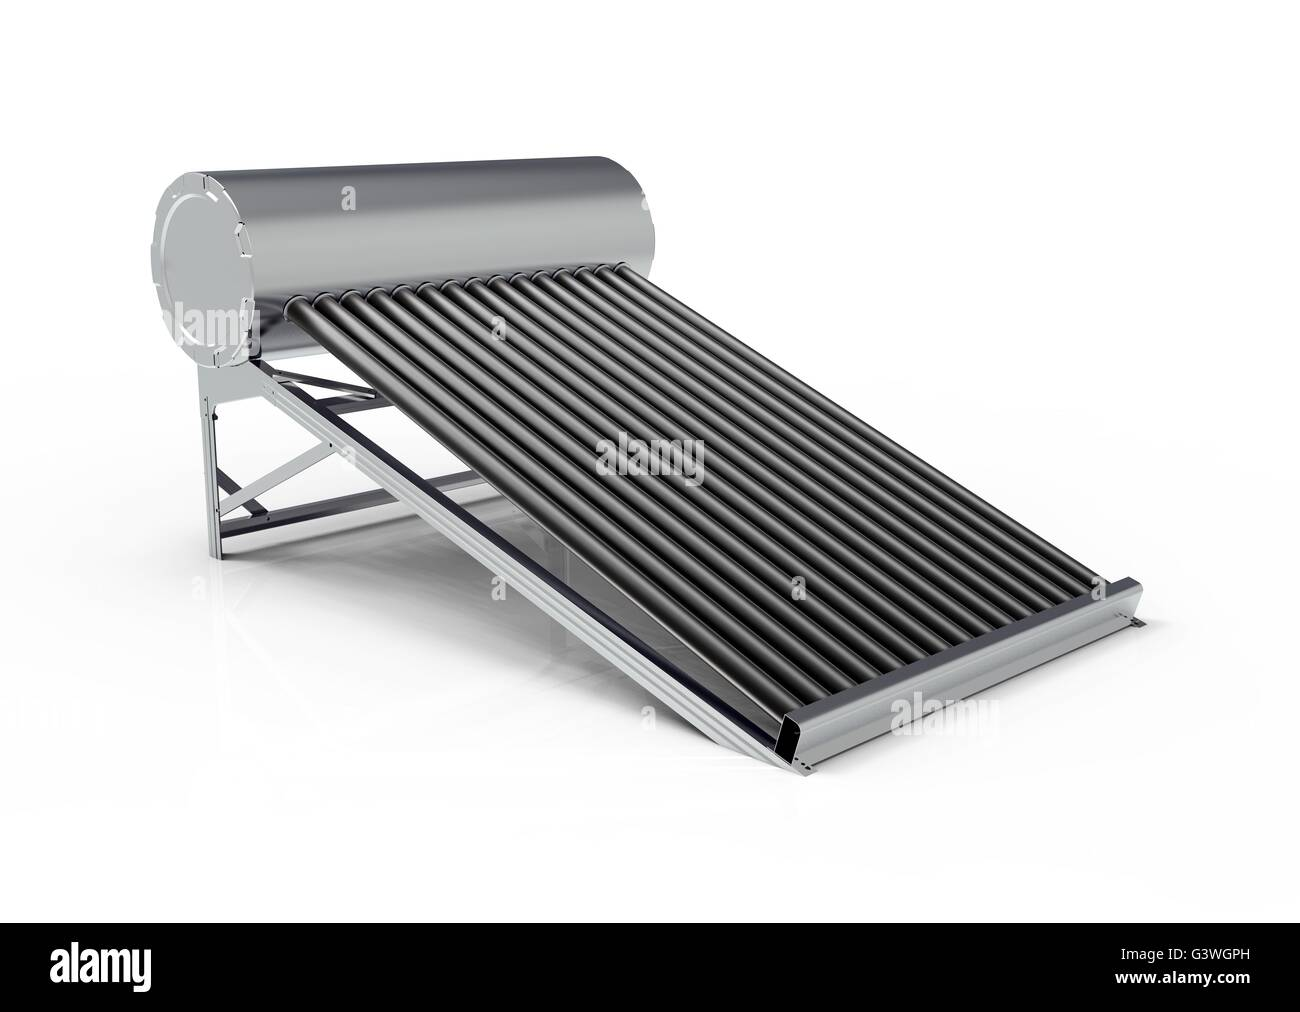 Solar water heater isolated on white back ground - Stock Image